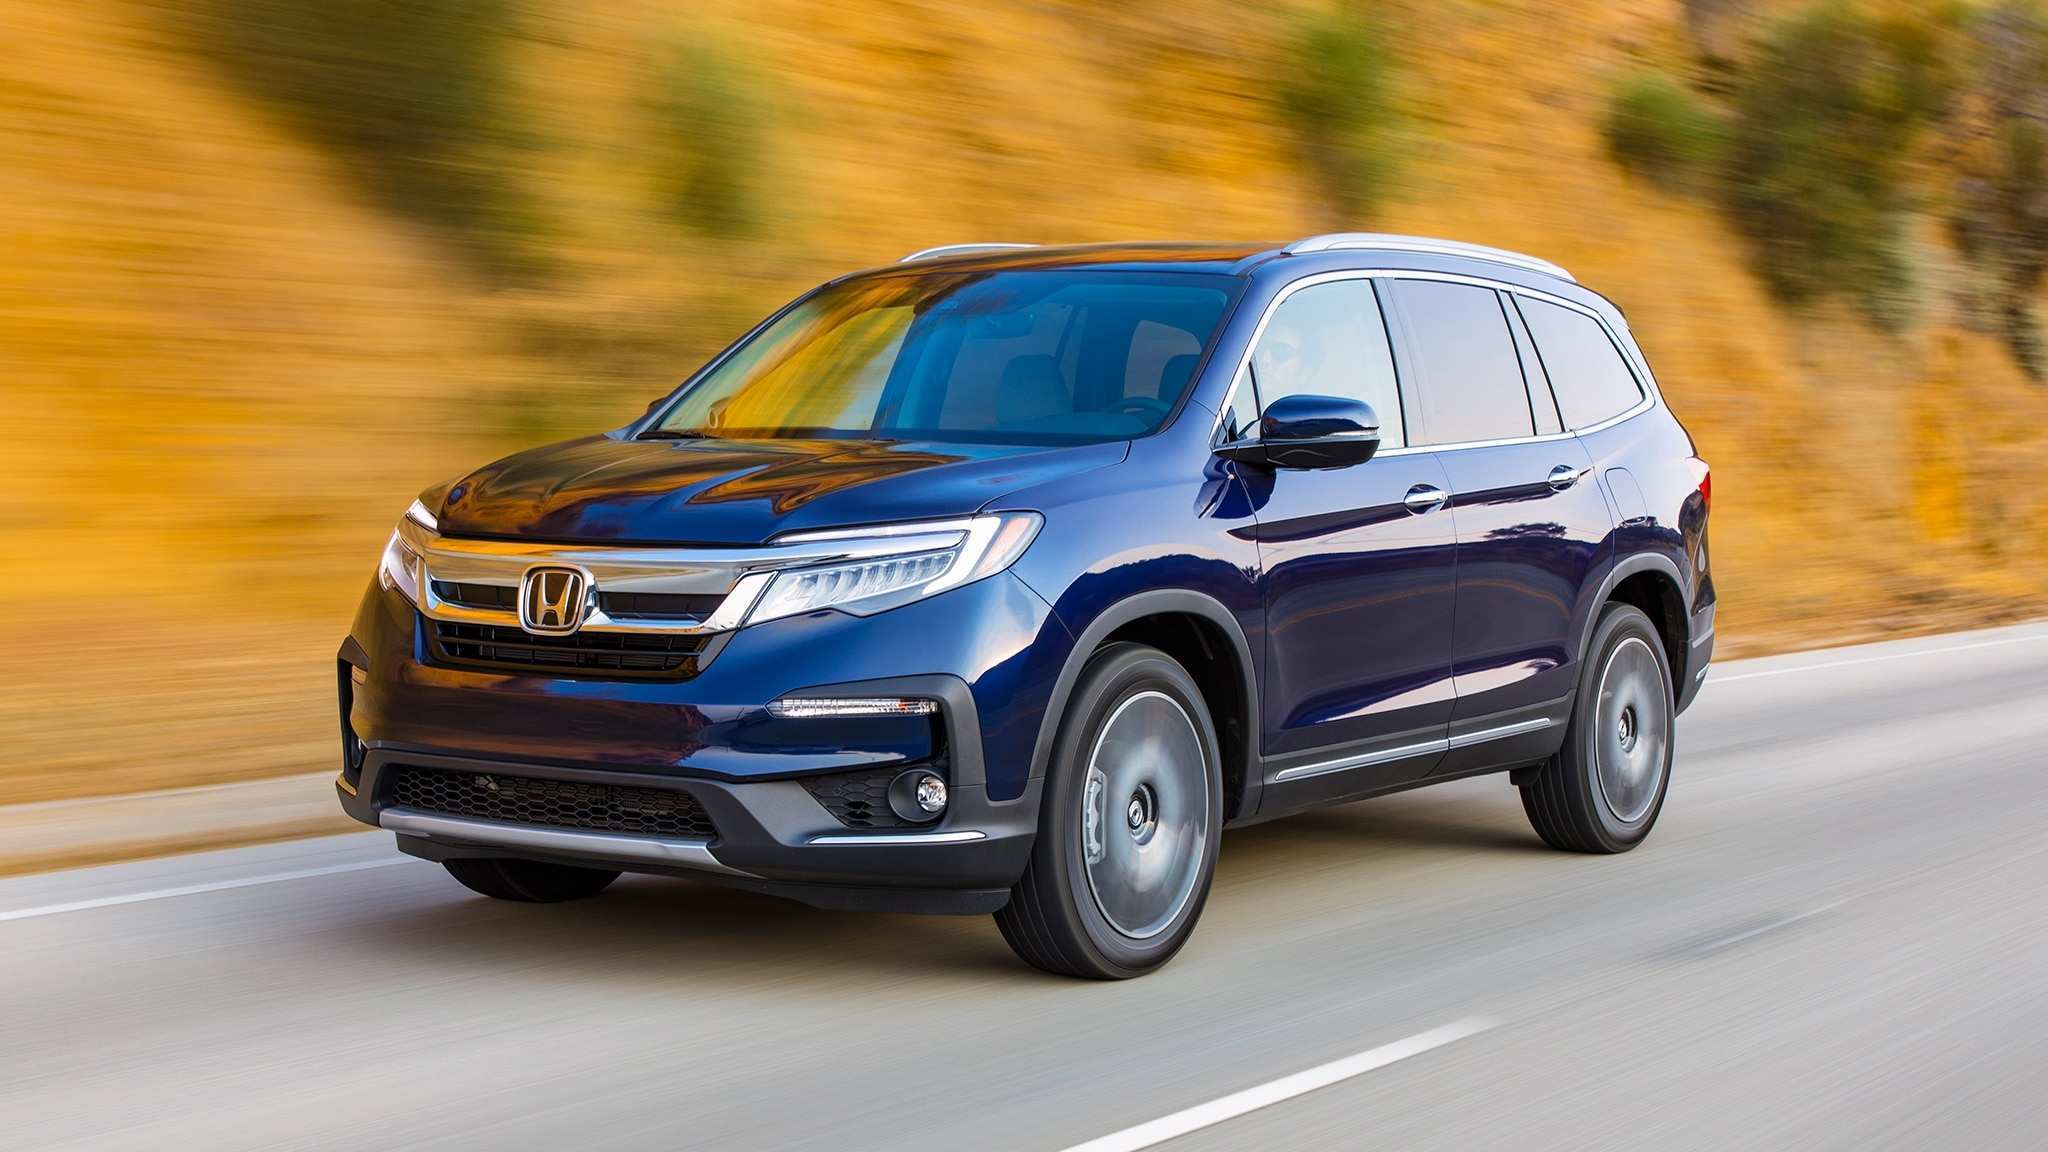 60 All New 2019 Honda Pilot News Pictures by 2019 Honda Pilot News